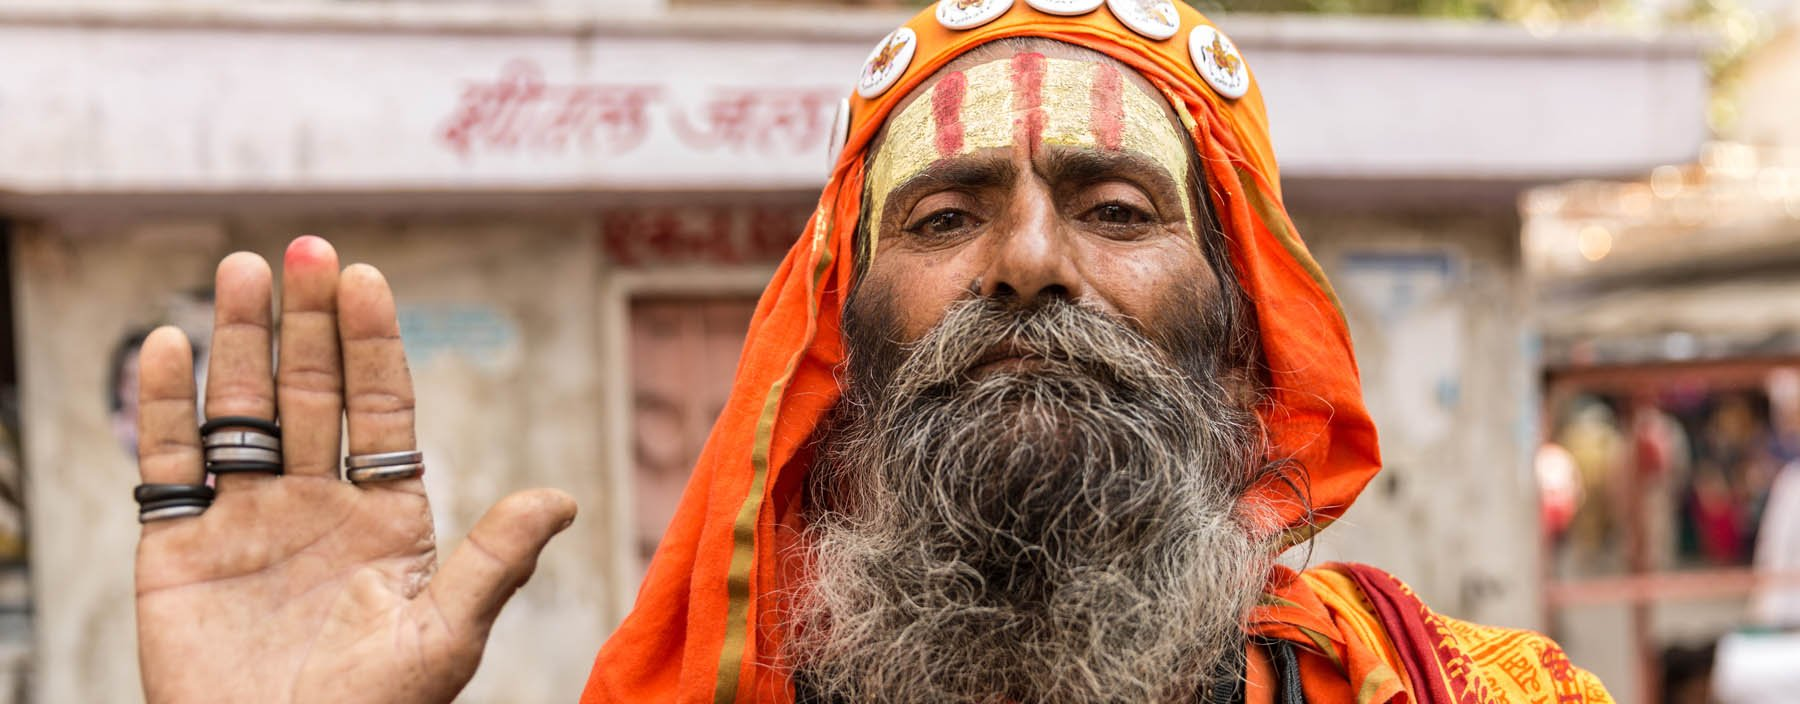 in, pushkar, hindu sadhu holy man (2).jpg